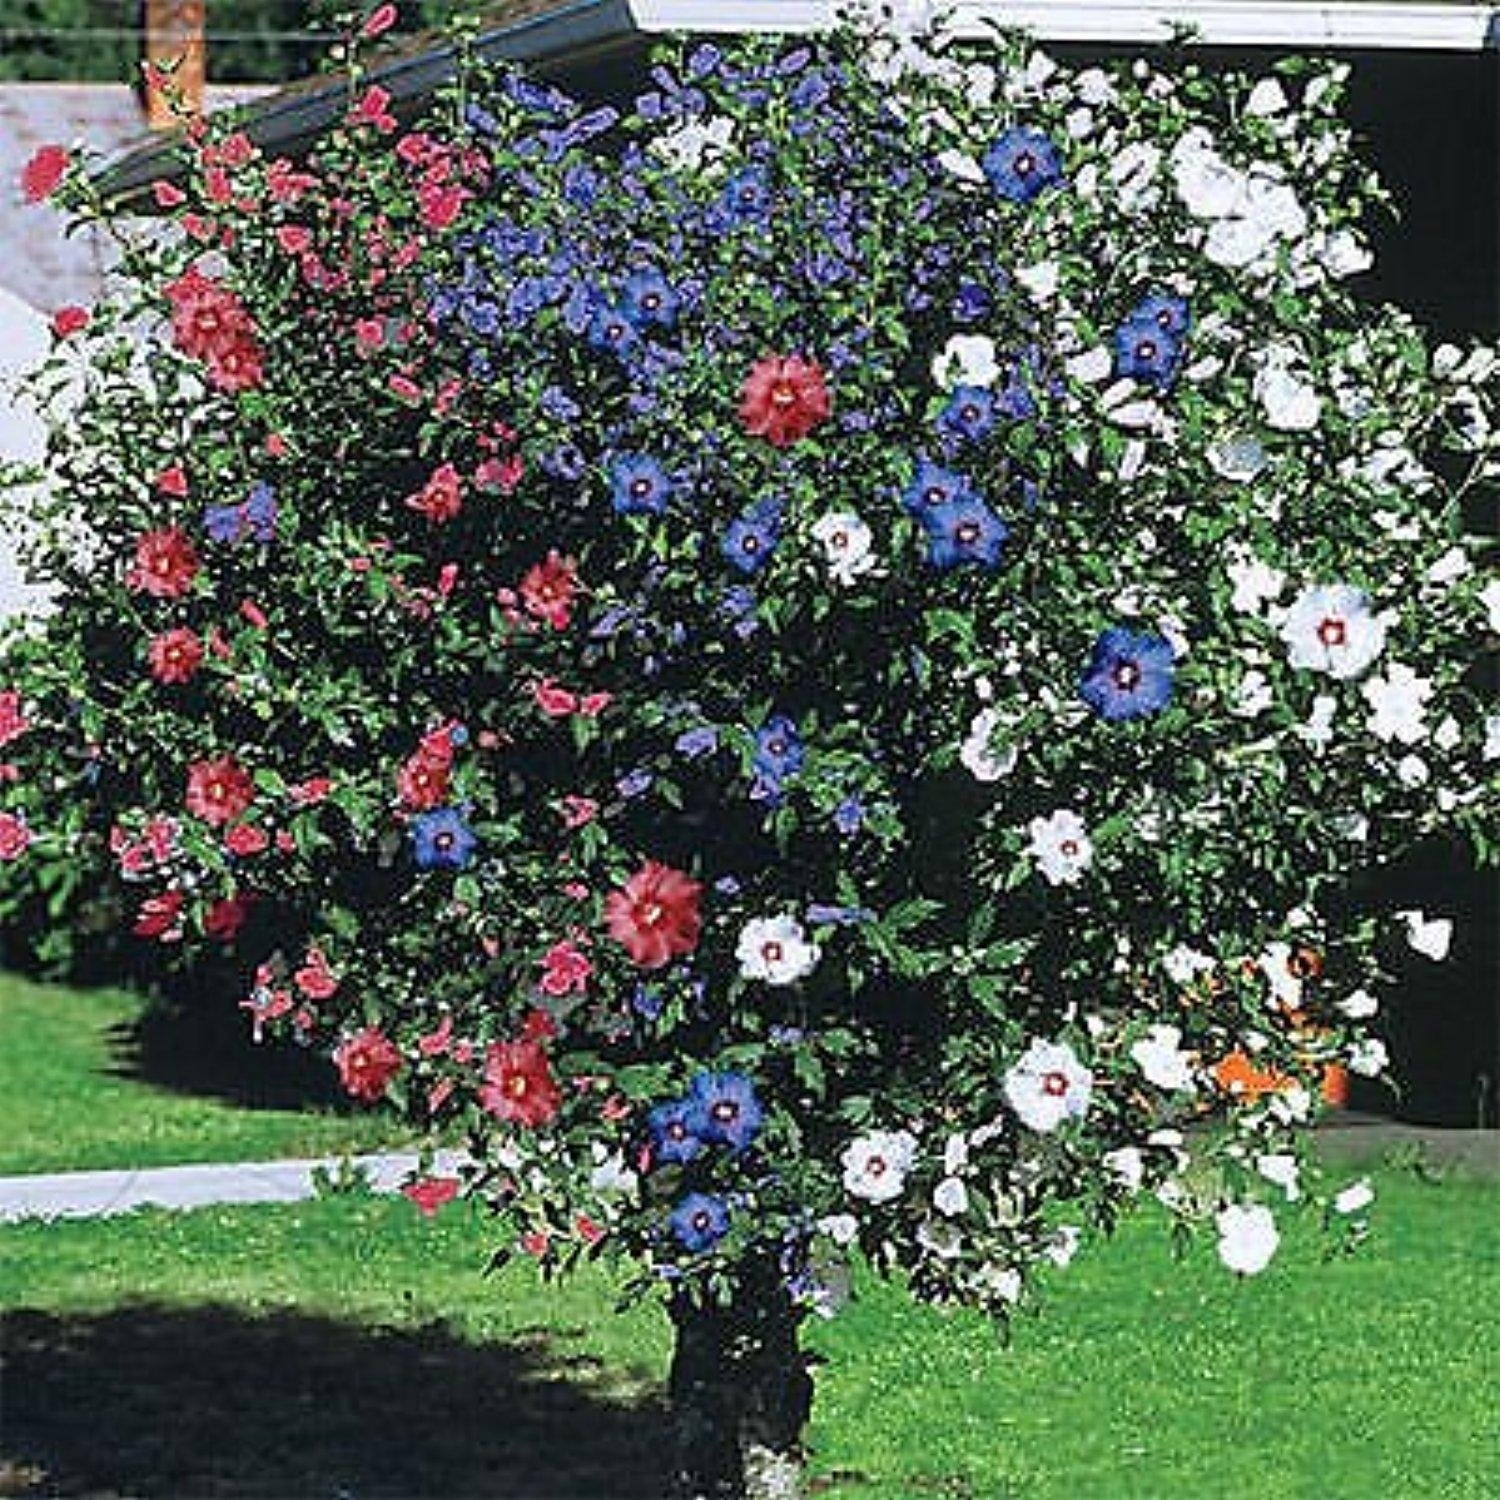 SHRUBS ONE PLANT 3 COLORS 3 IN ONE ROSE OF SHARON HIBISCUS TREE 1-2 FT